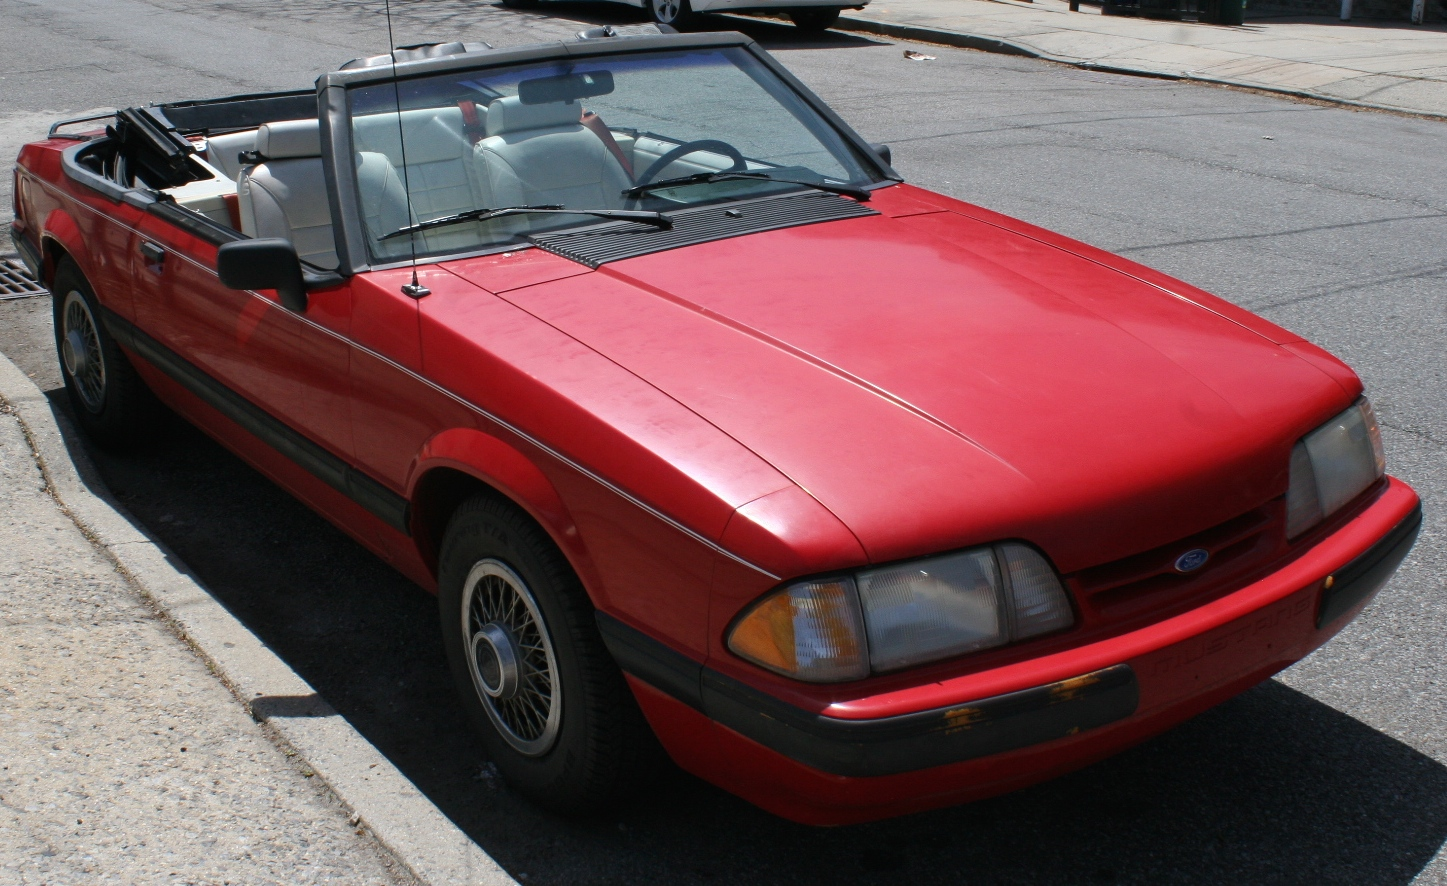 File:1991 Ford Mustang LX Convertible.JPG - Wikimedia Commons